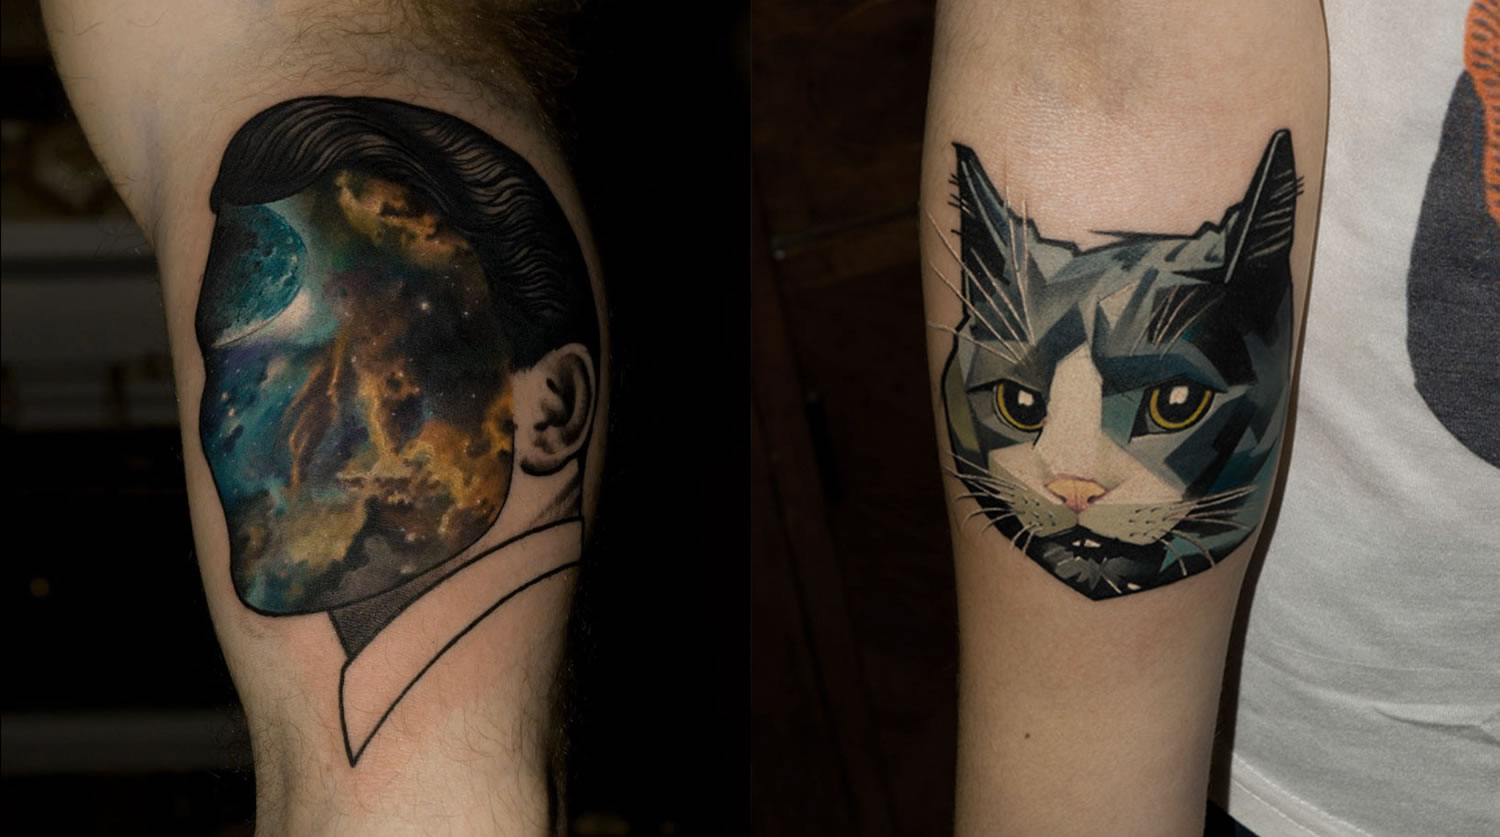 man with galaxy face and cat tattoos, double exposure